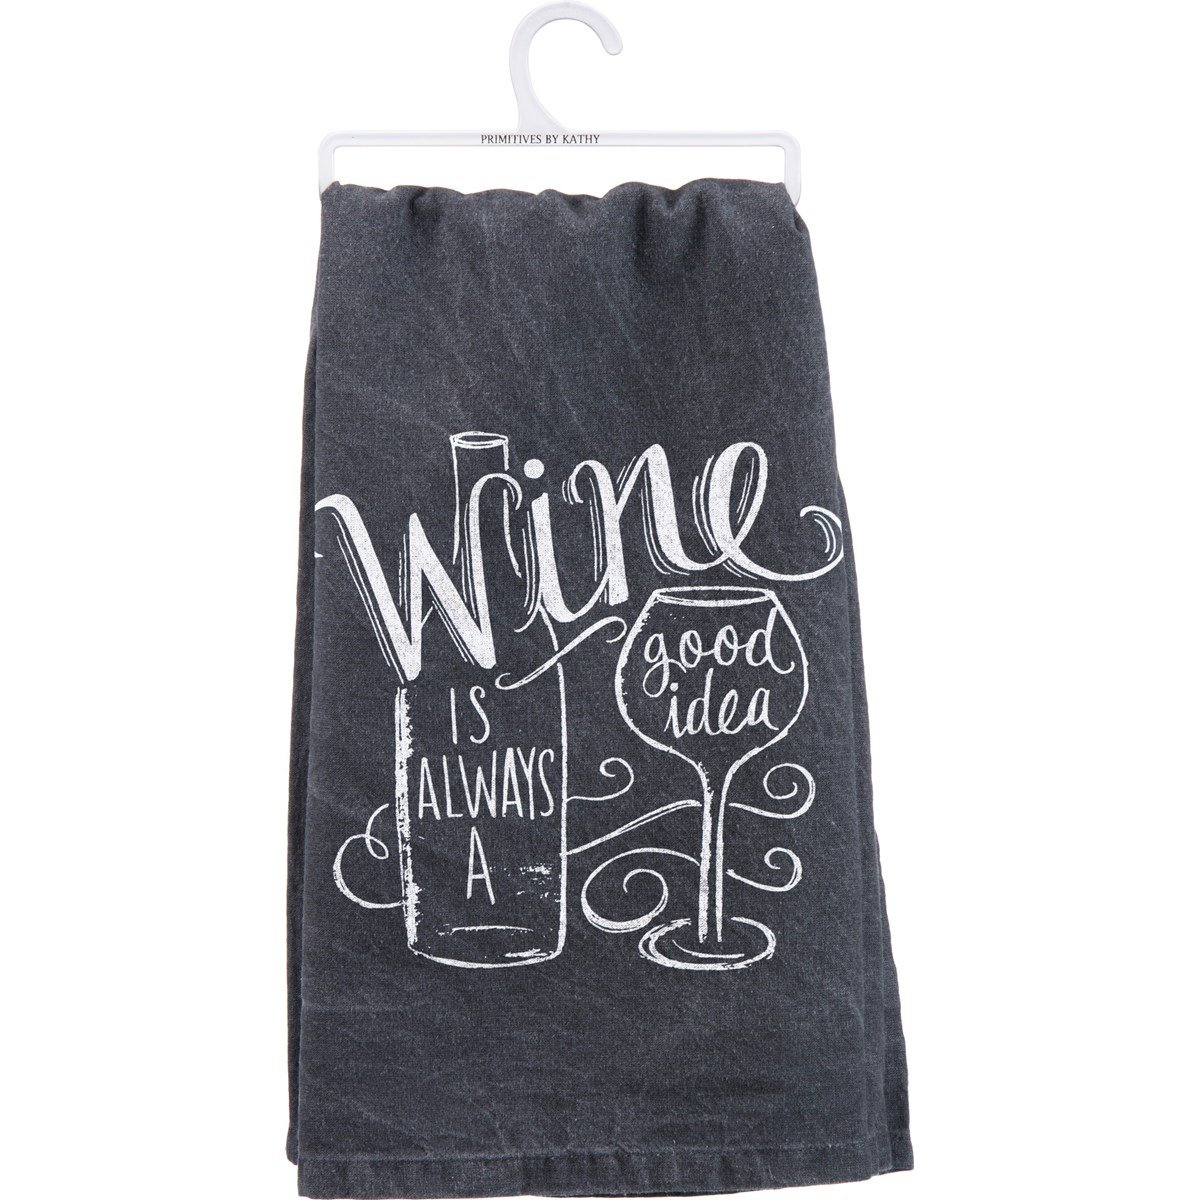 03- tea towel wine good idea